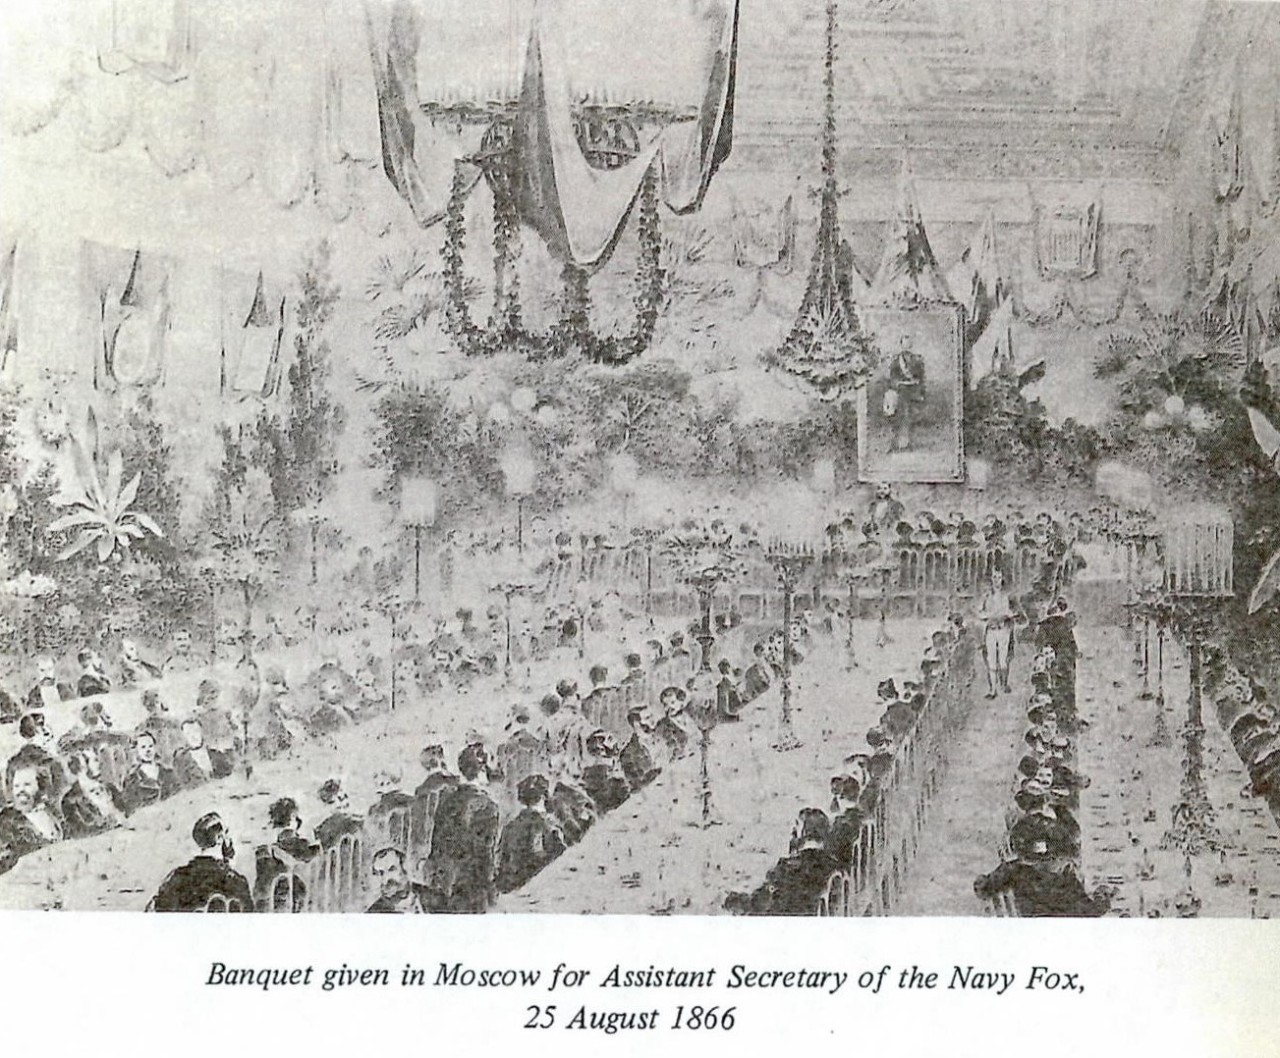 Banquet given Moscow for Assistant SEcretary of the Navy Fox, 25 August 1866